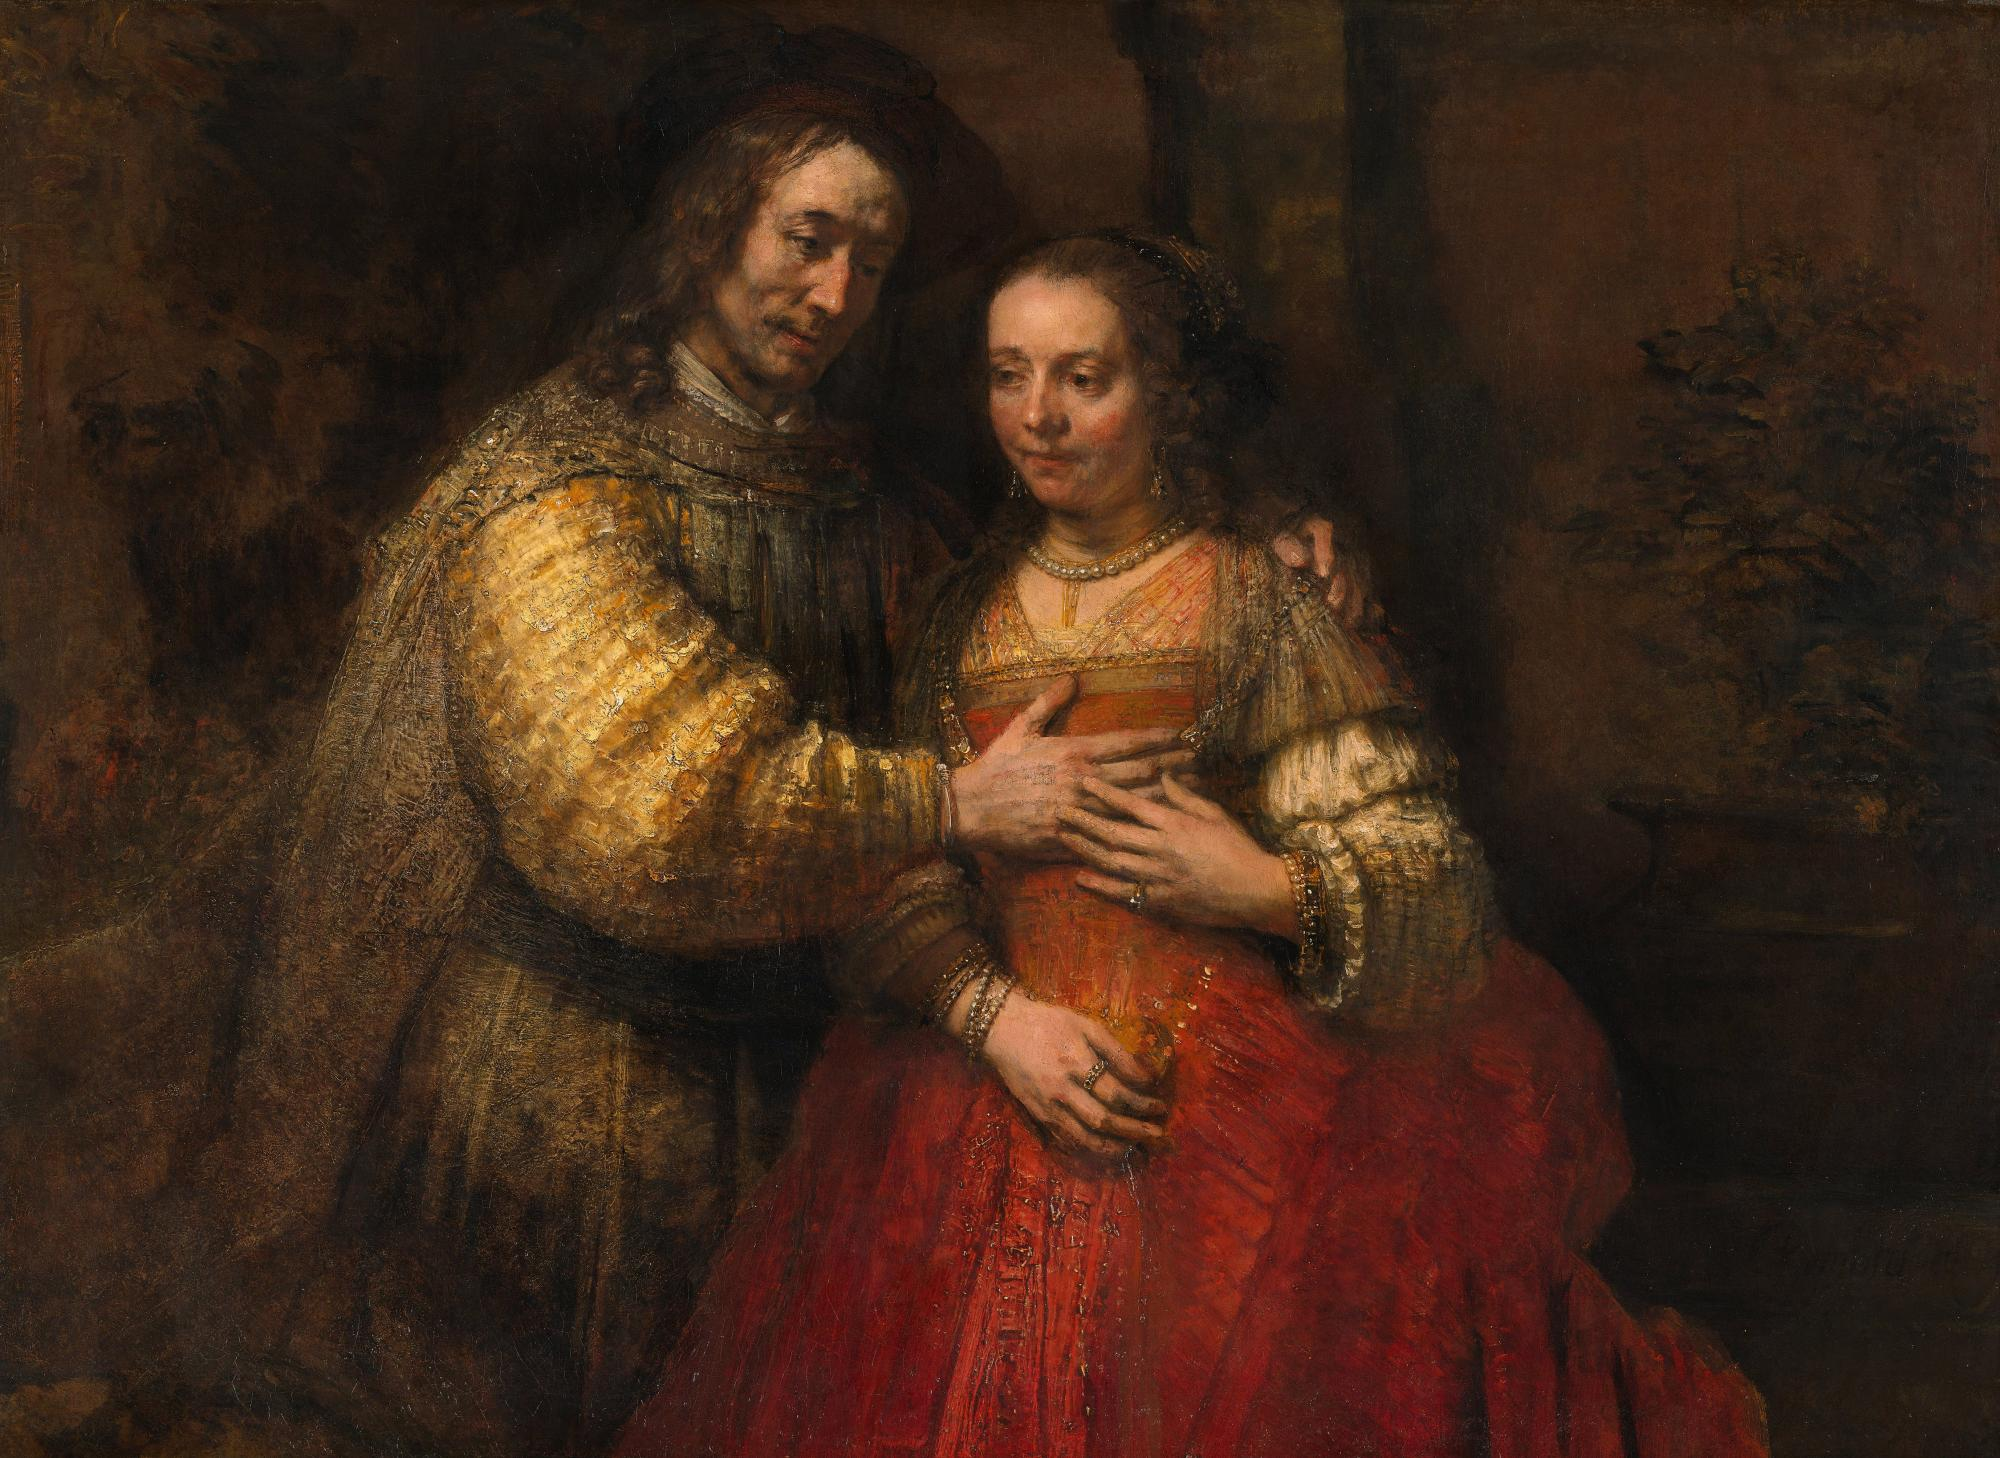 Classic erotic paintings by rembrandt have